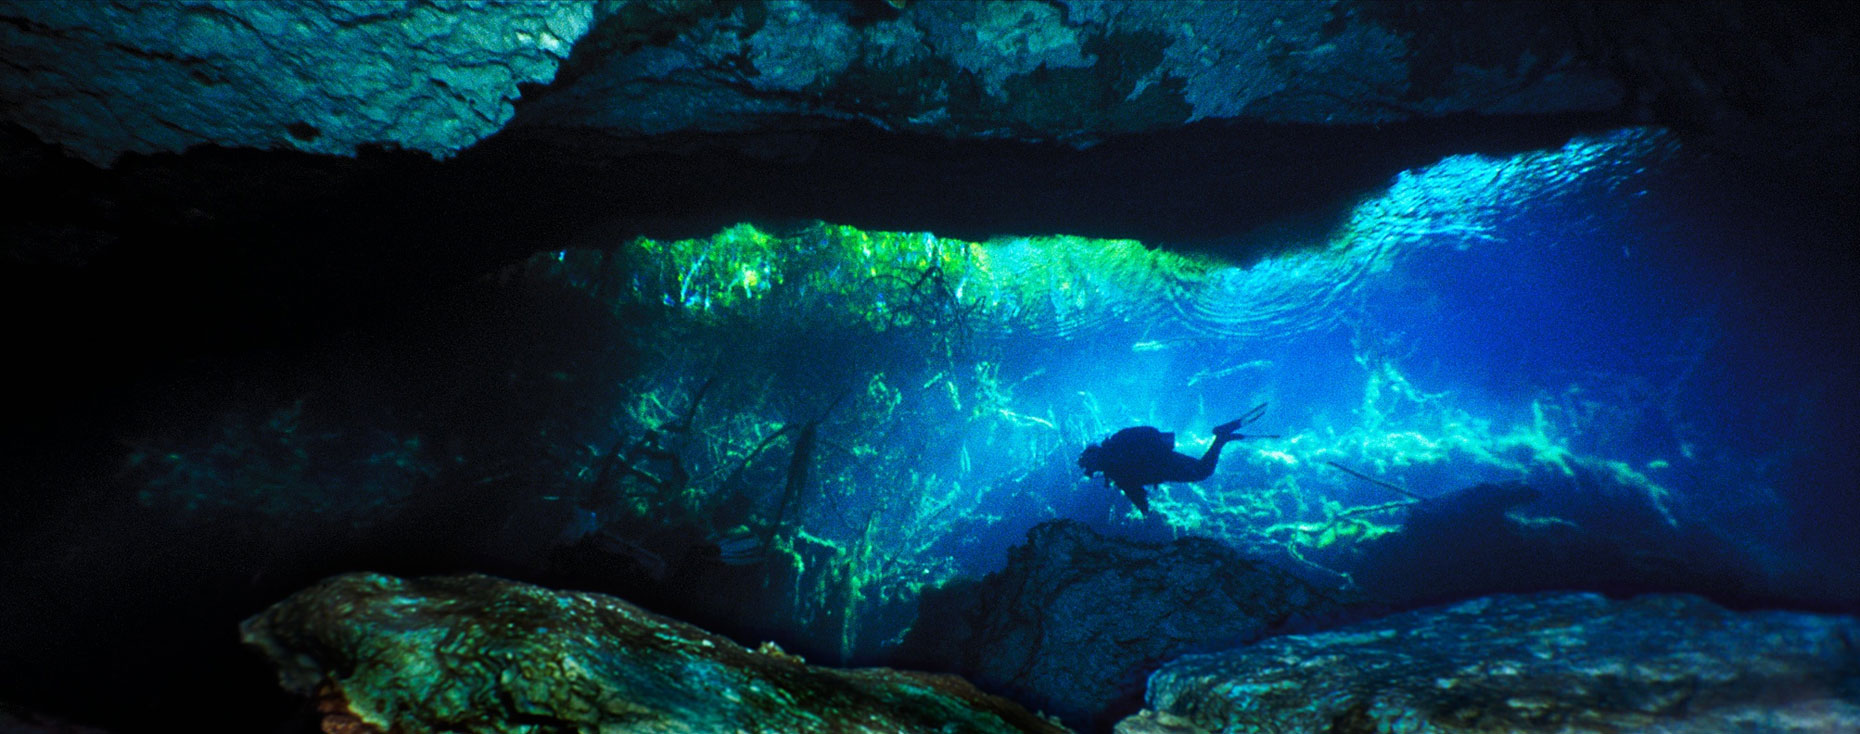 Pannoramic/underwater cave/Mexico/InsideOut Studios